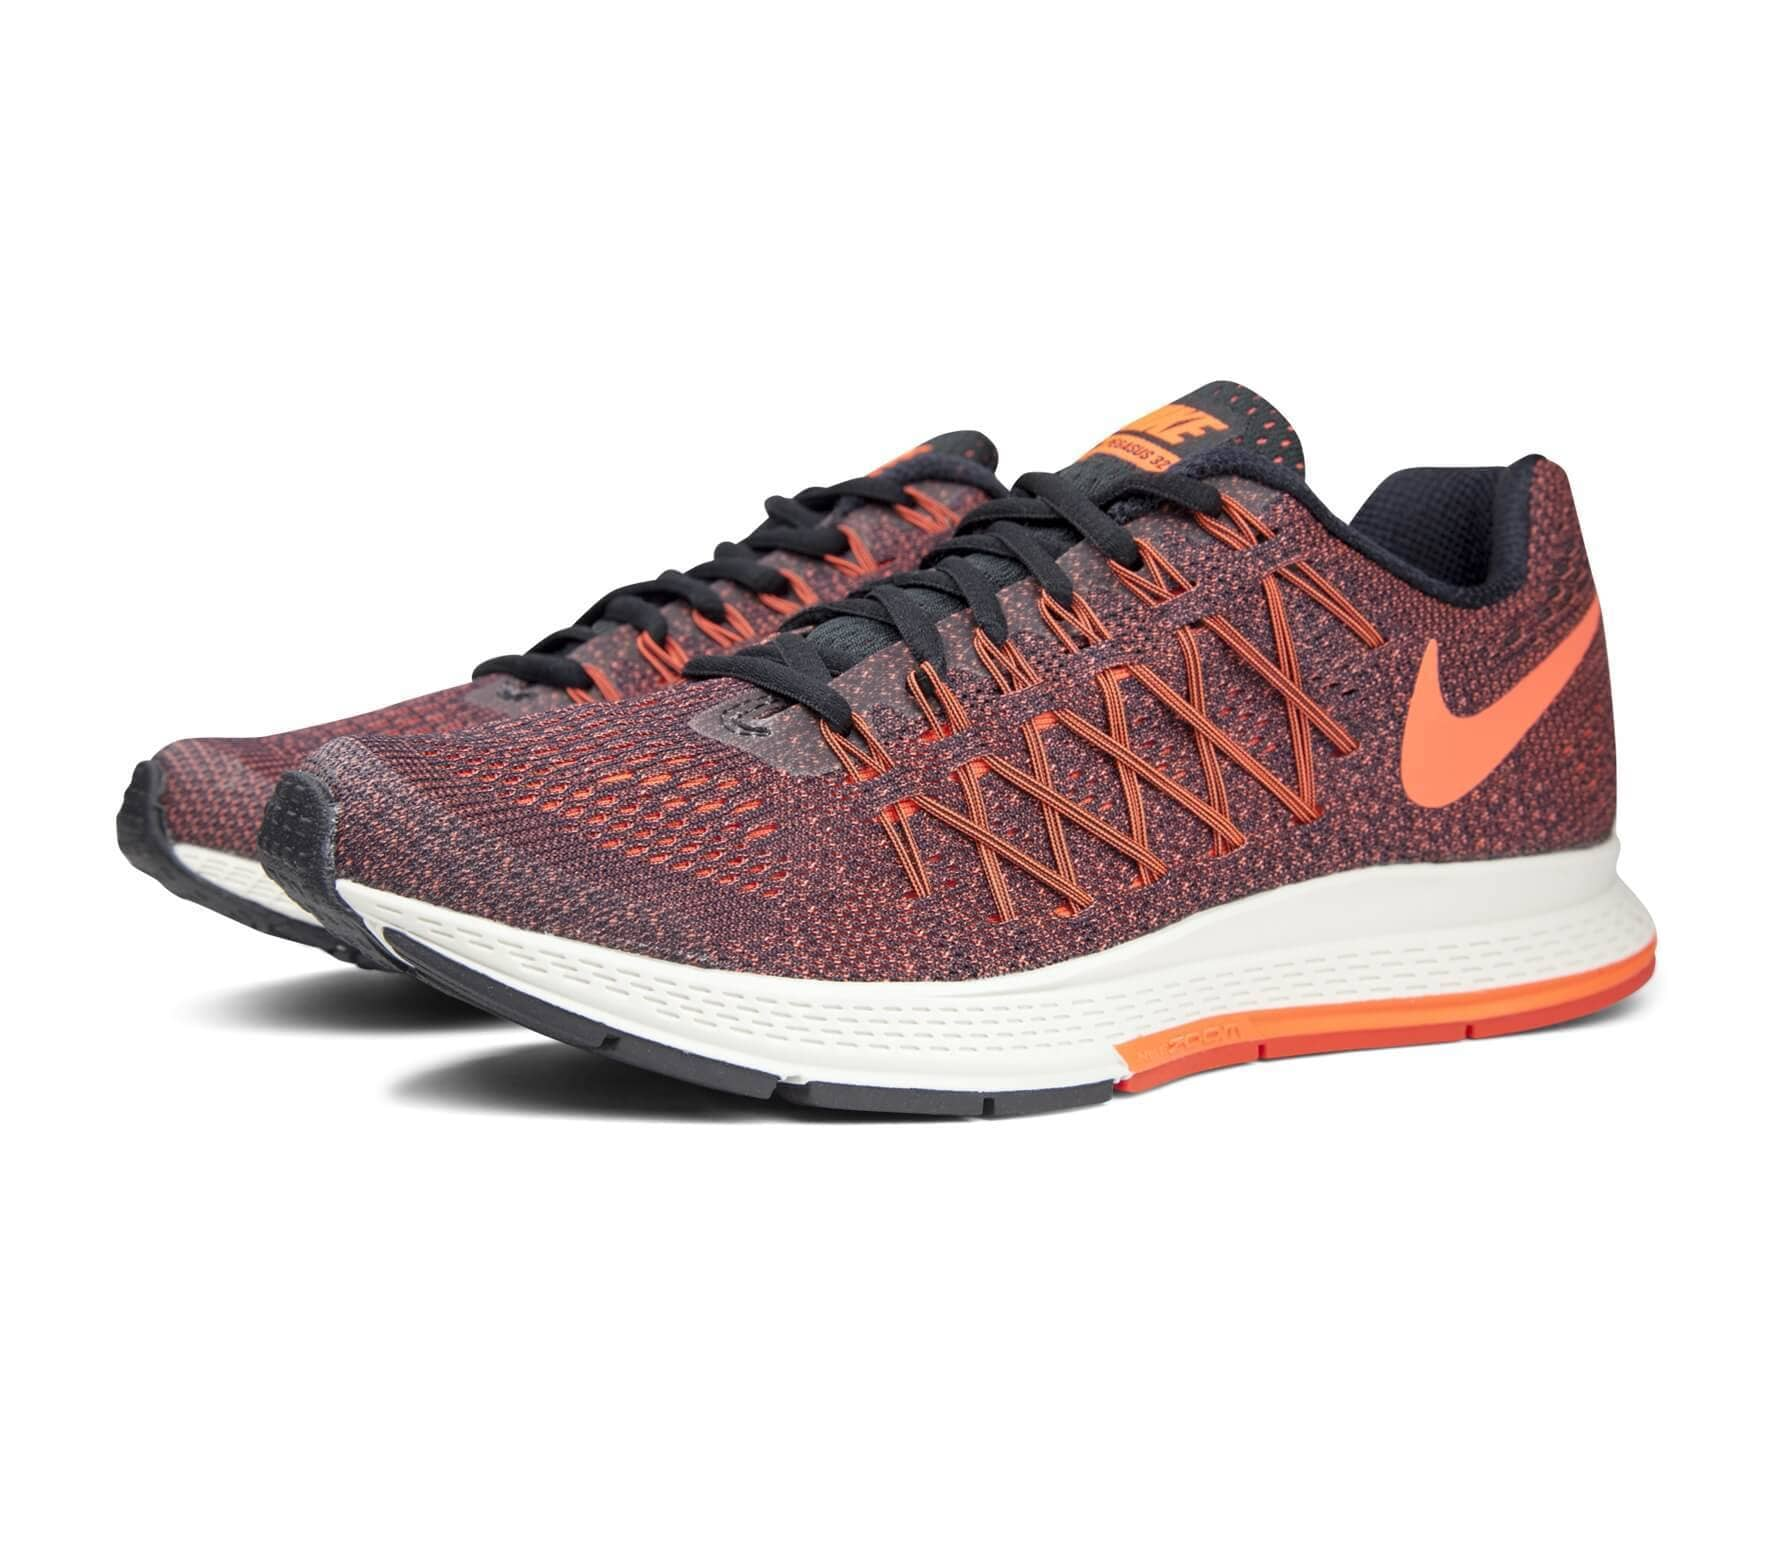 separation shoes 5b42f 4d92d Nike - Air Zoom Pegasus 32 women s running shoes (black orange)